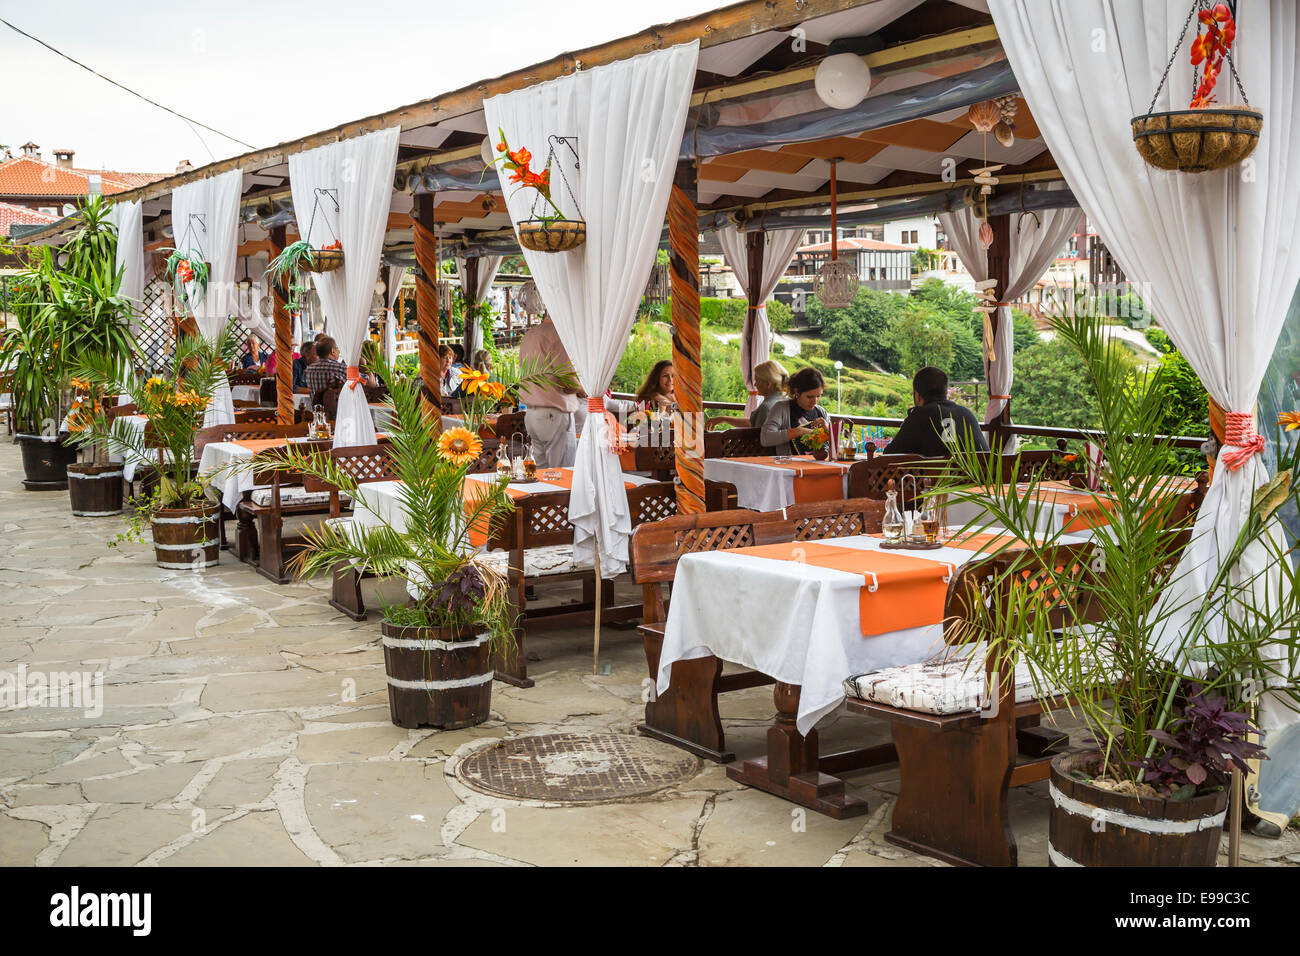 Decor of an outdoor seaside restaurant in nessebar